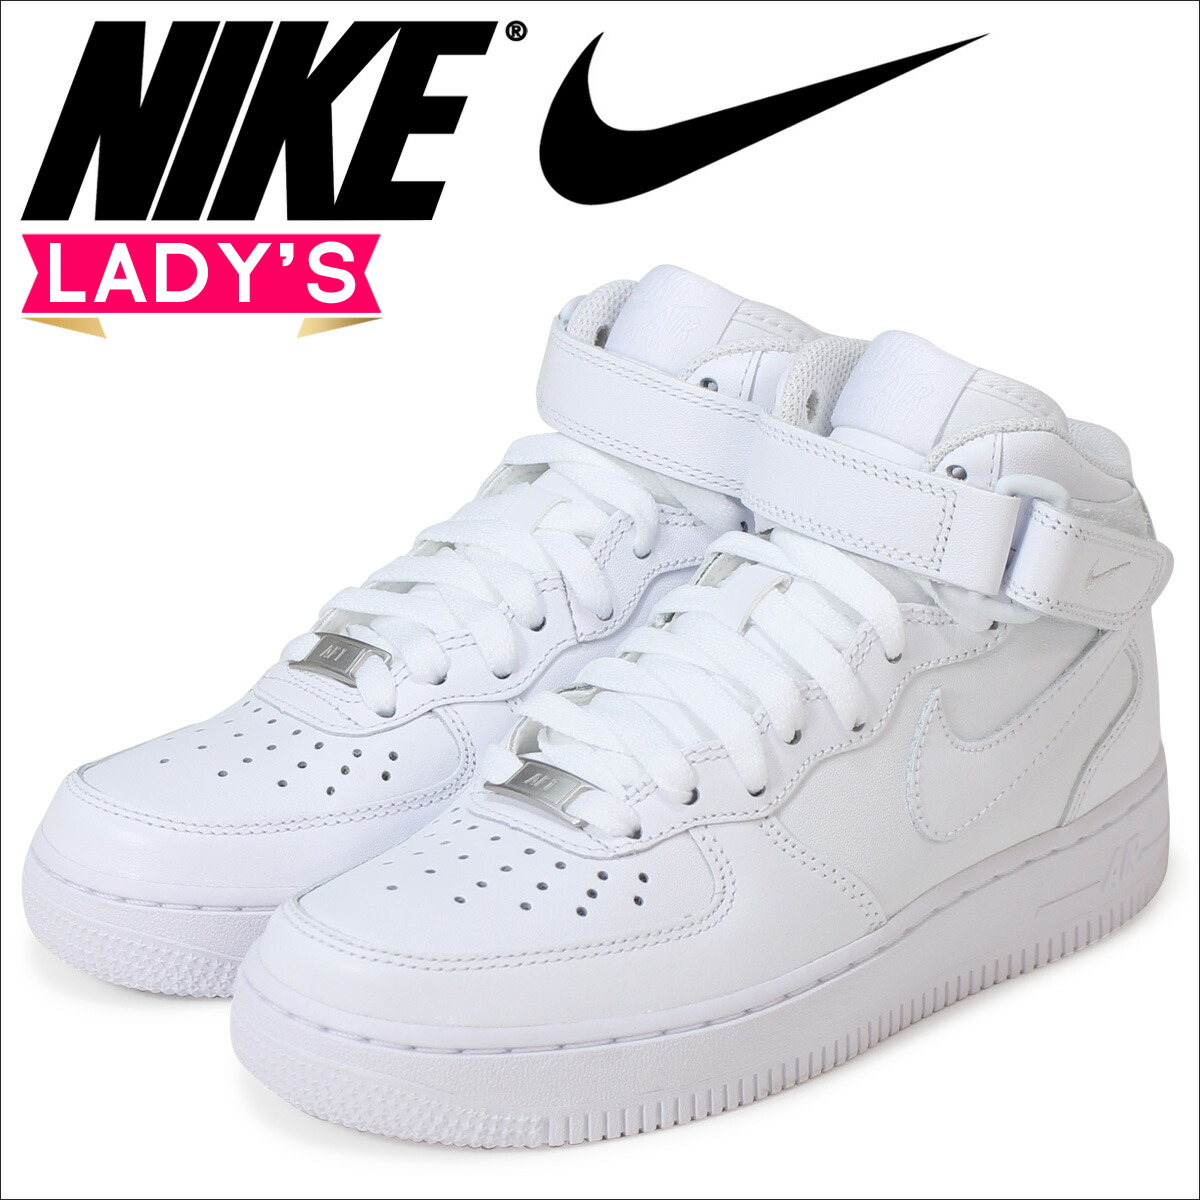 NIKE Nike 366731 WMNS AIR FORCE 1 MID 07 LE women Nike air force 1 mid 07 leather 001:BLACK 100:WHITE sneakers Lady's basketball shoes mid cut